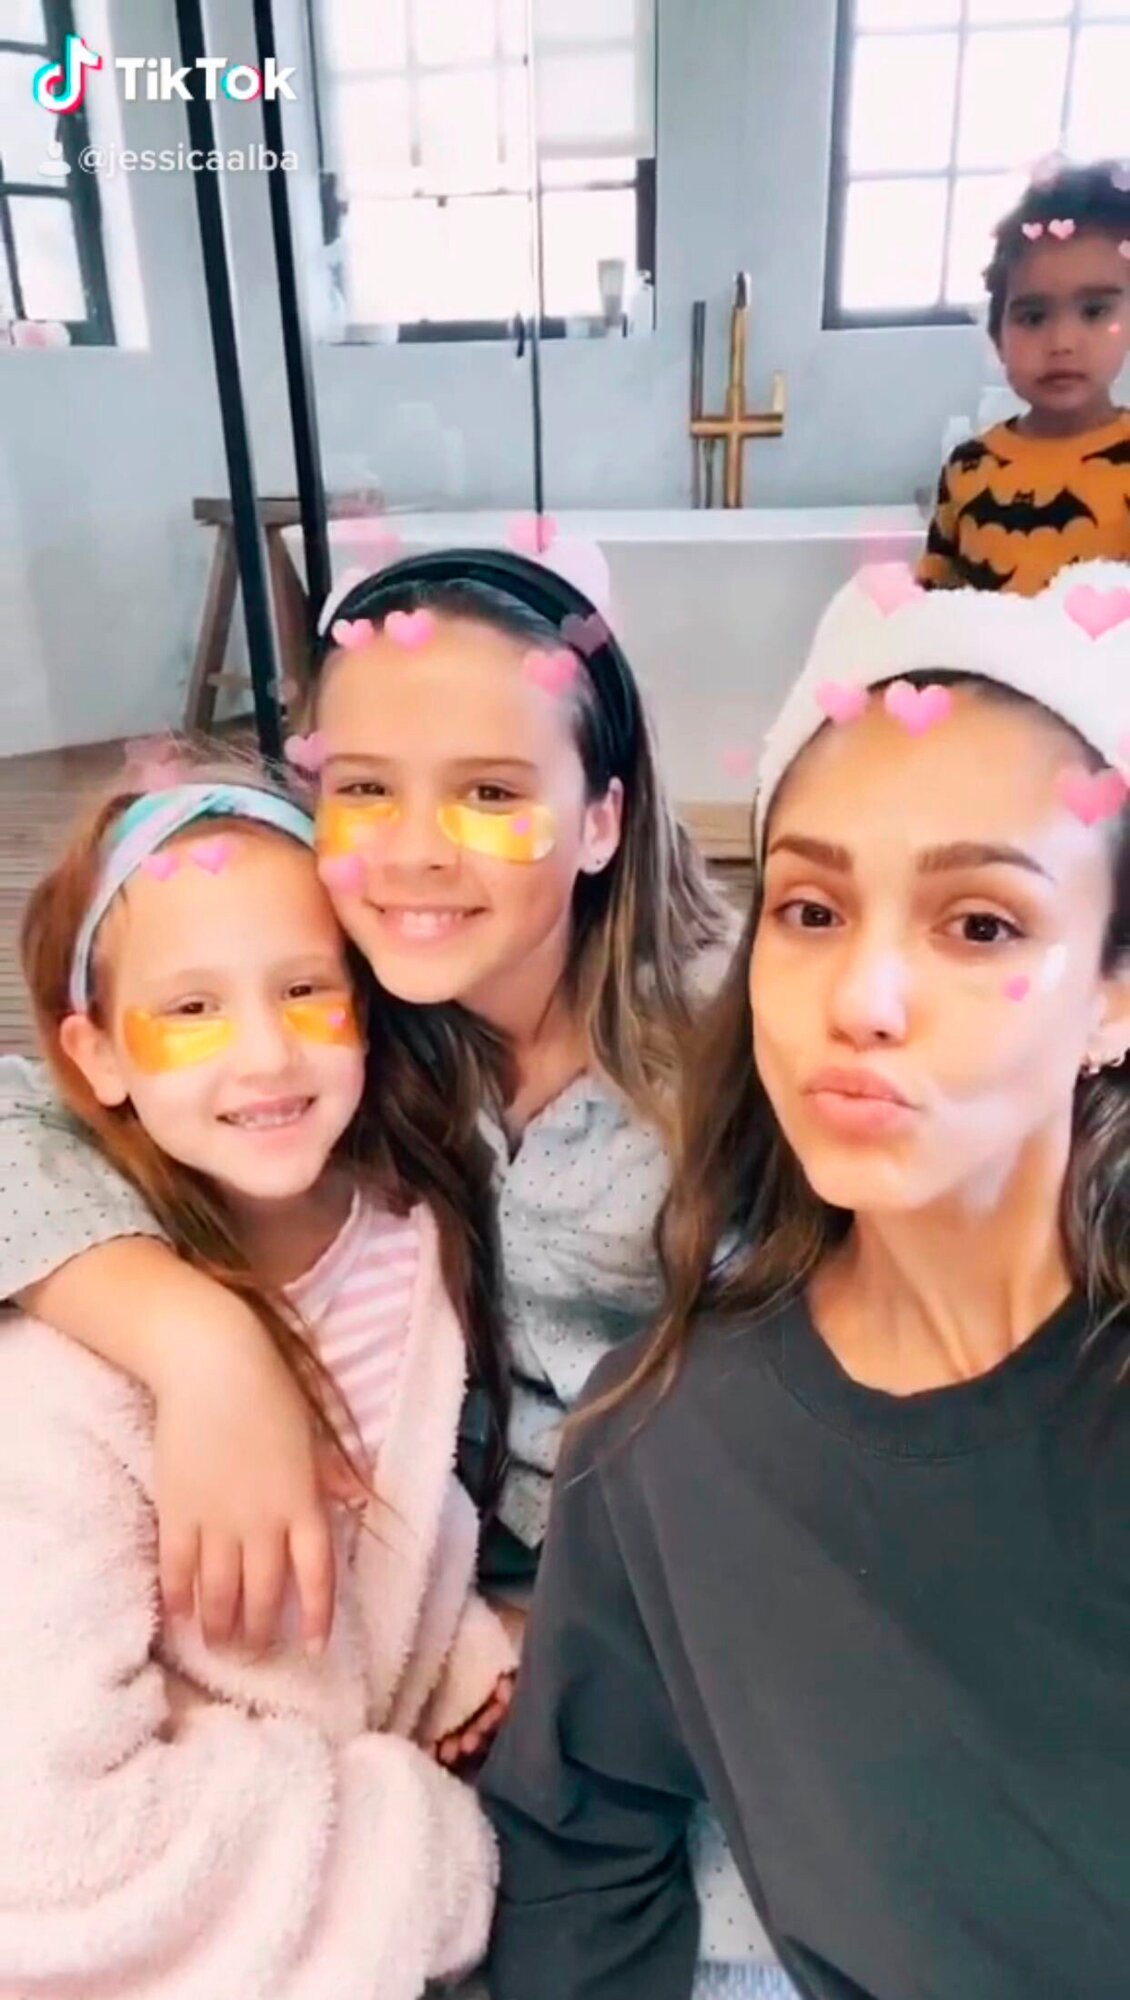 Jessica Alba Says She Joined Tiktok To Bond With Her Kids People Com